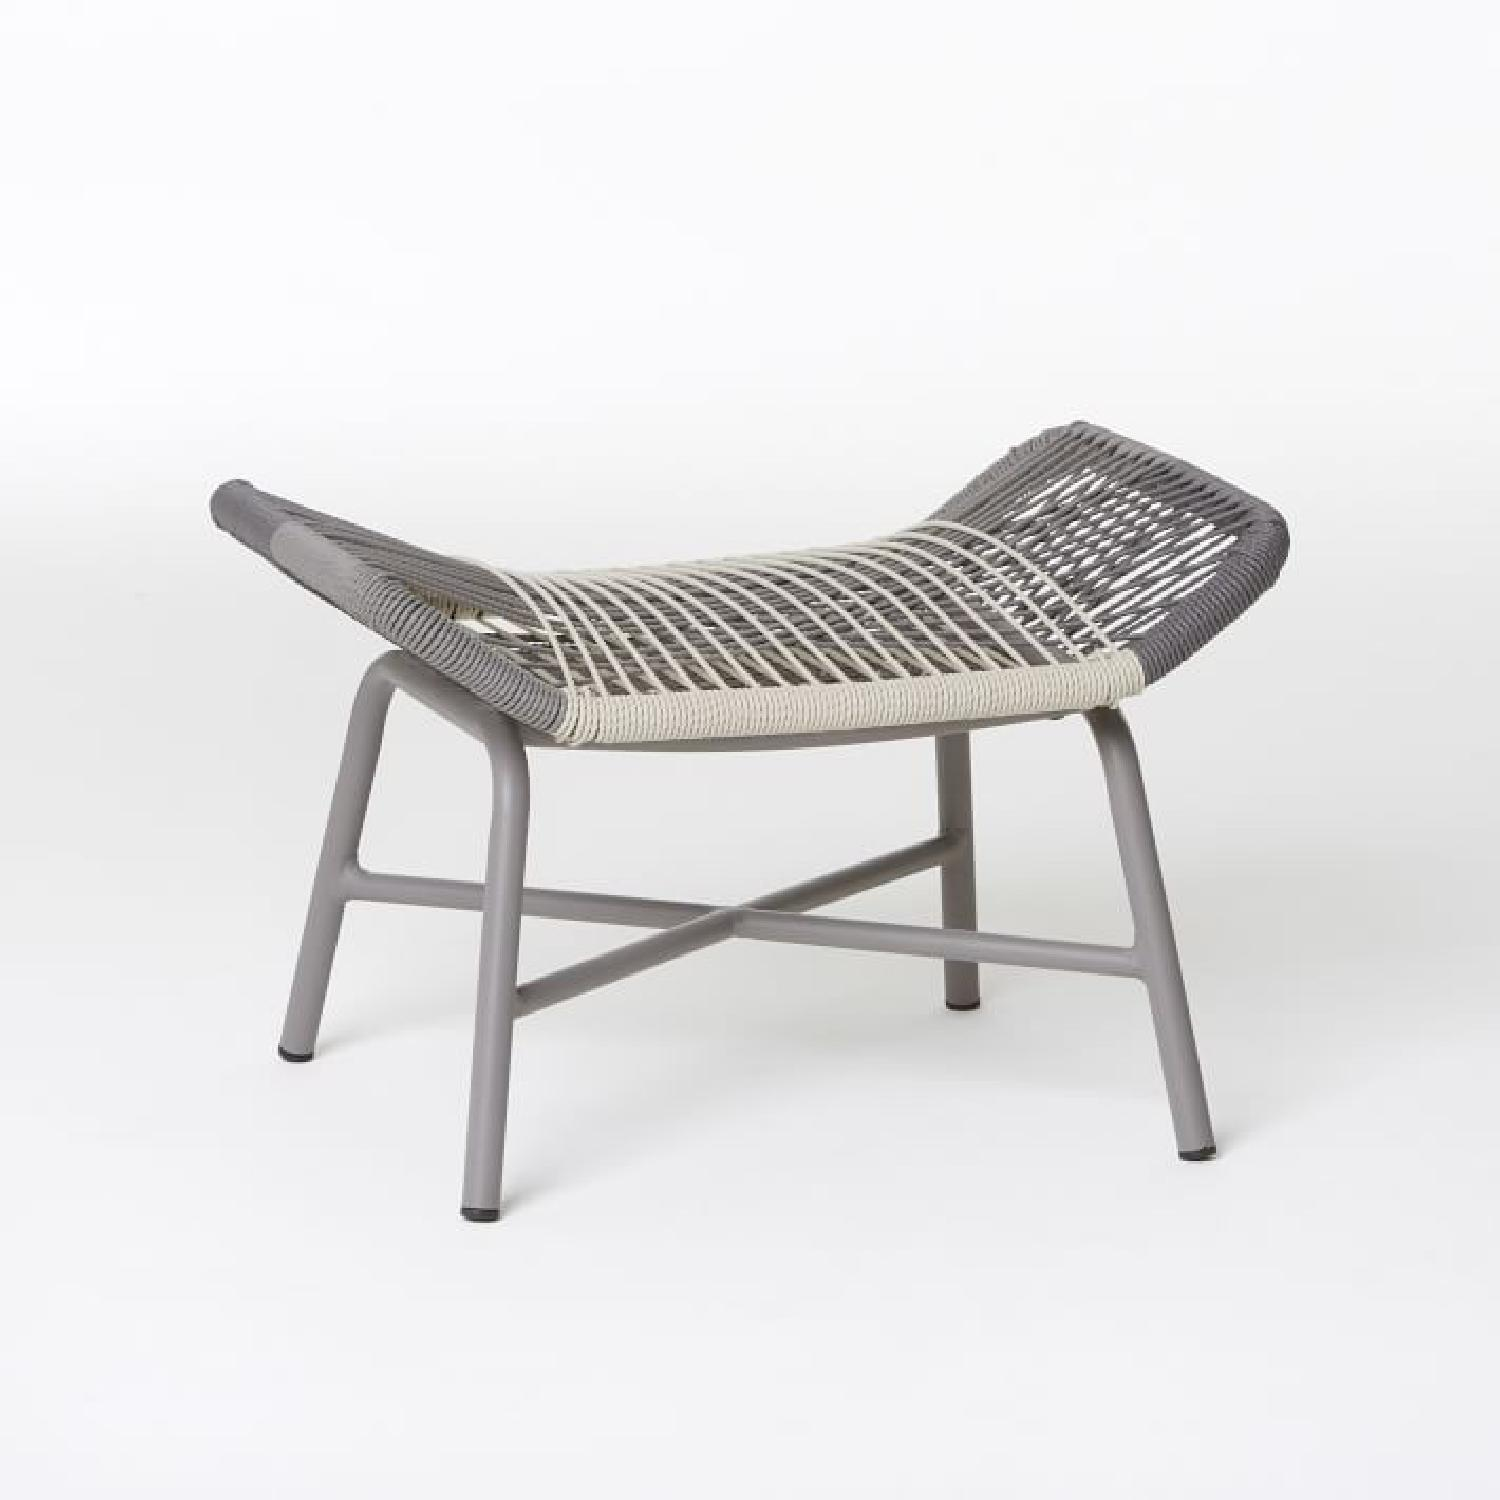 West Elm Huron Outdoor Lounge Chair & Ottoman - image-7